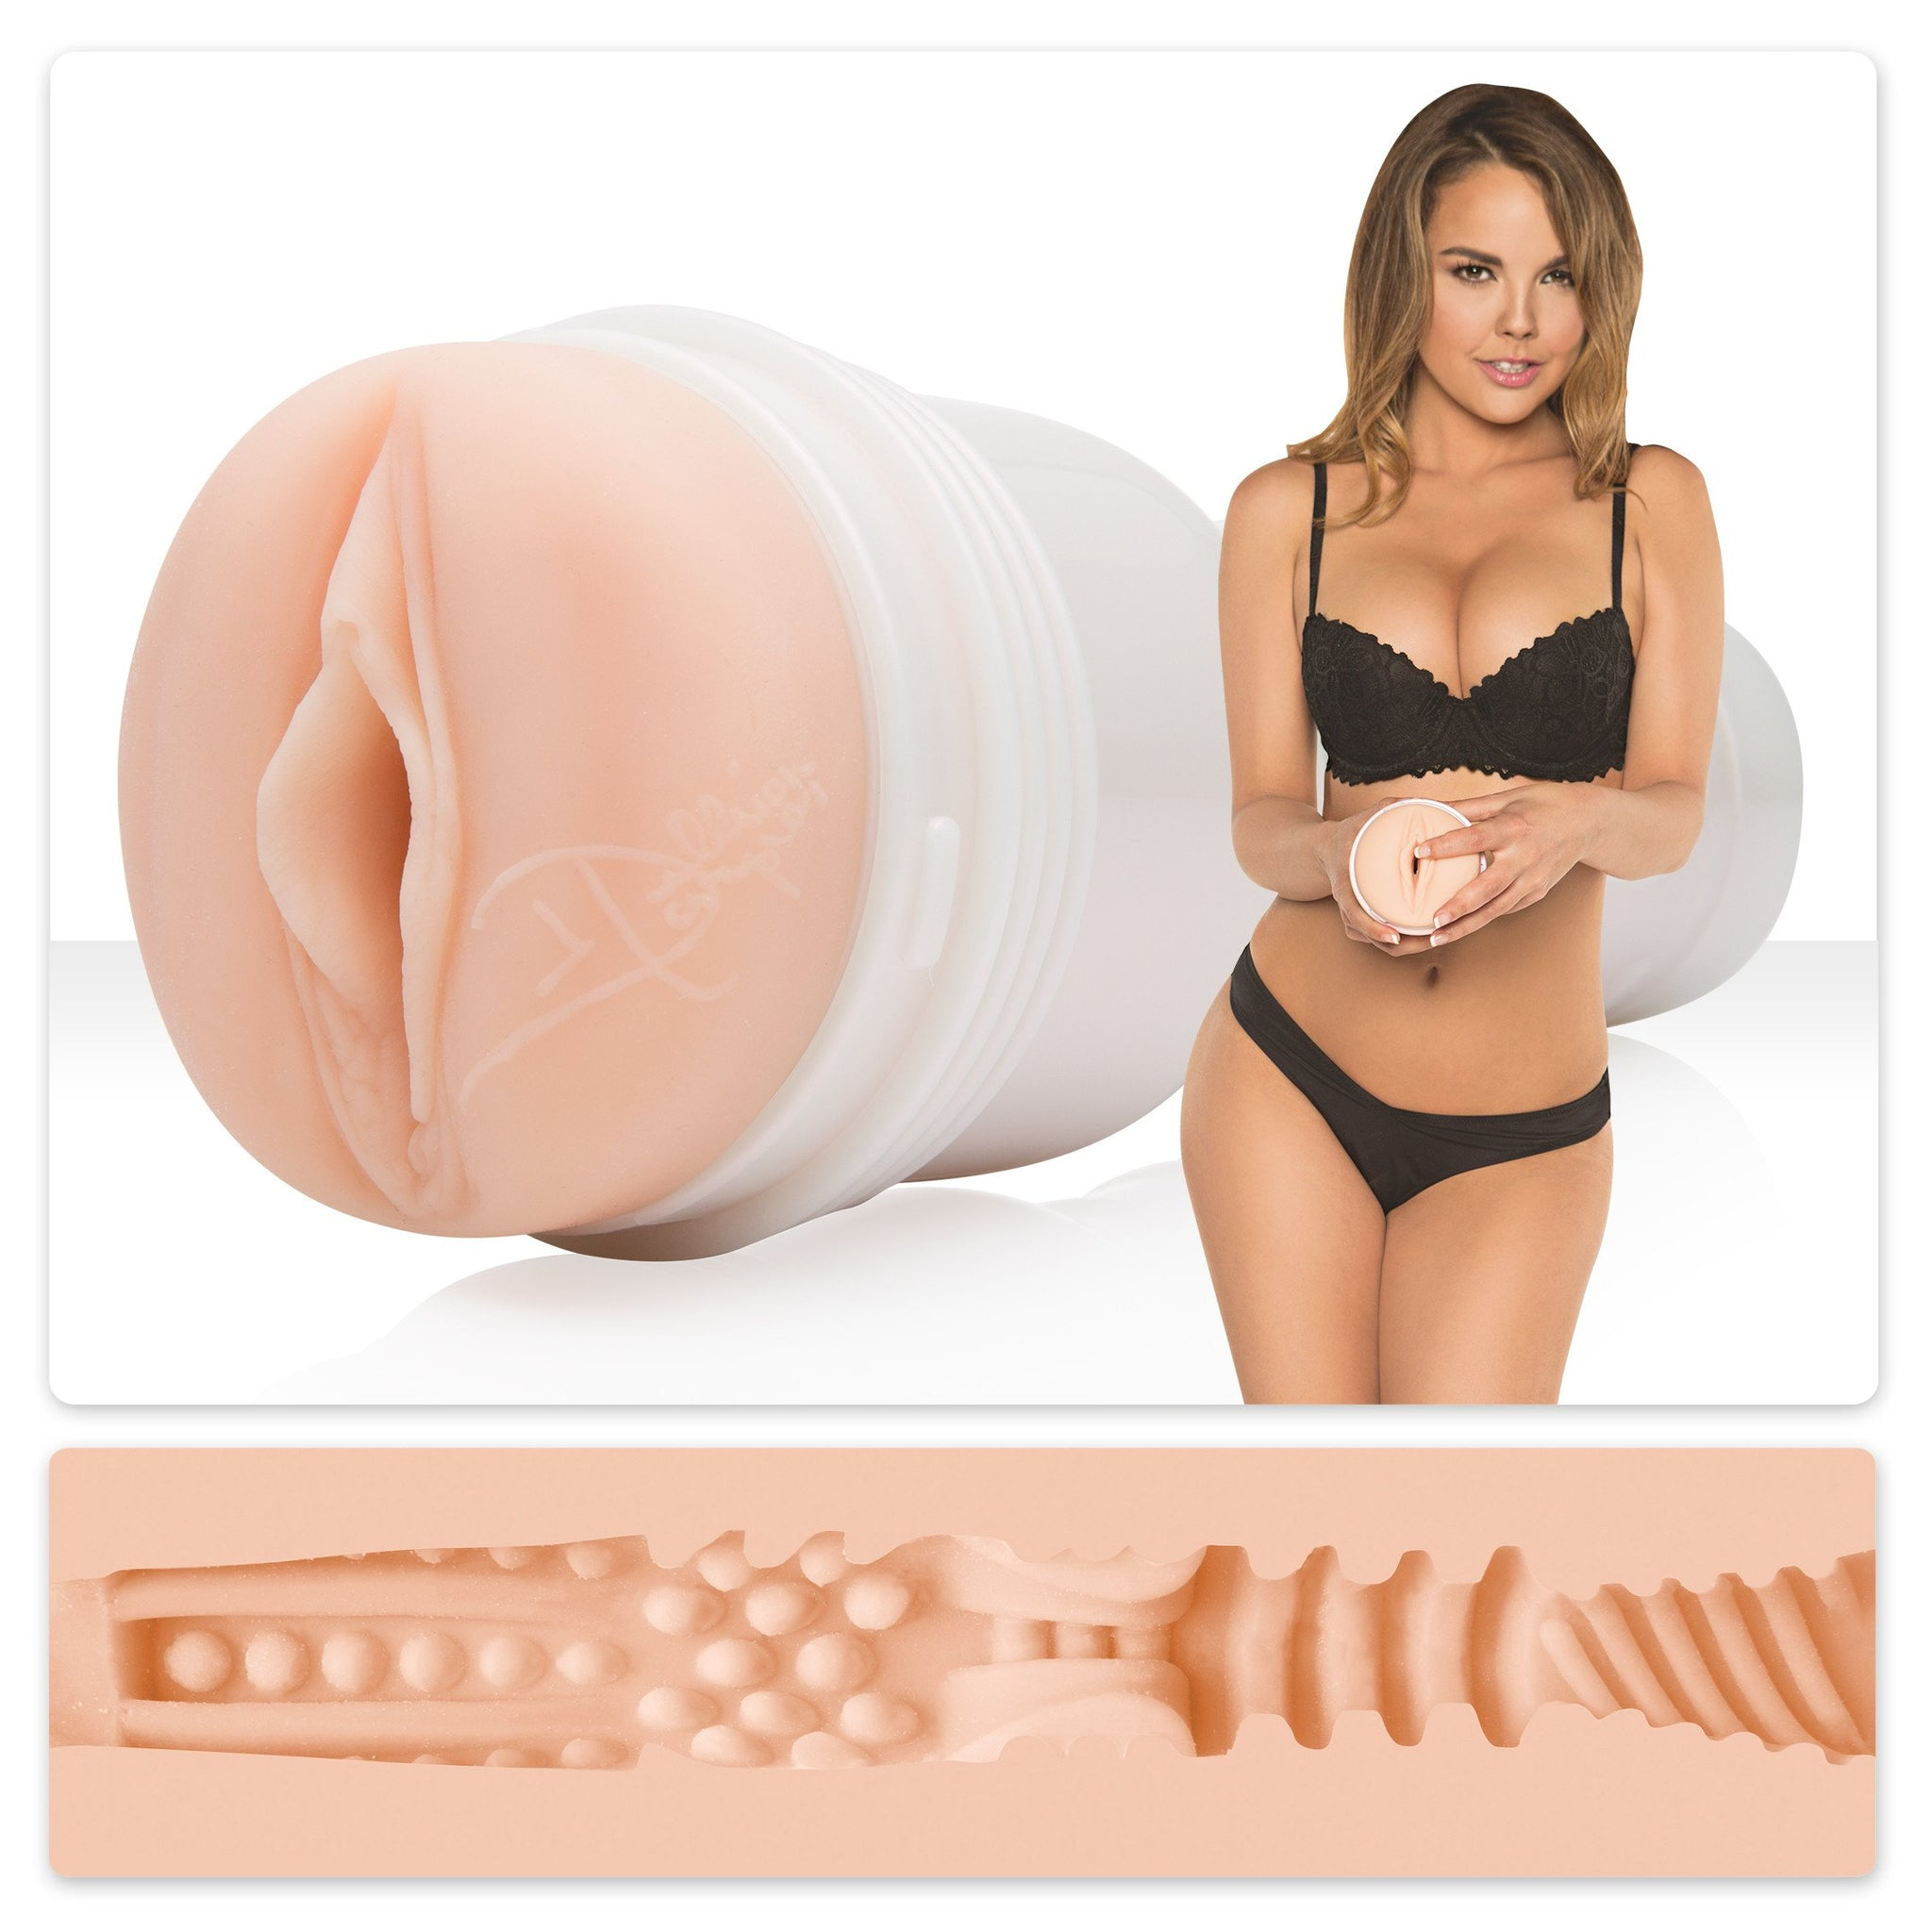 Fleshlight Girls® Dillion Harper Crush - Sex Toy Australia